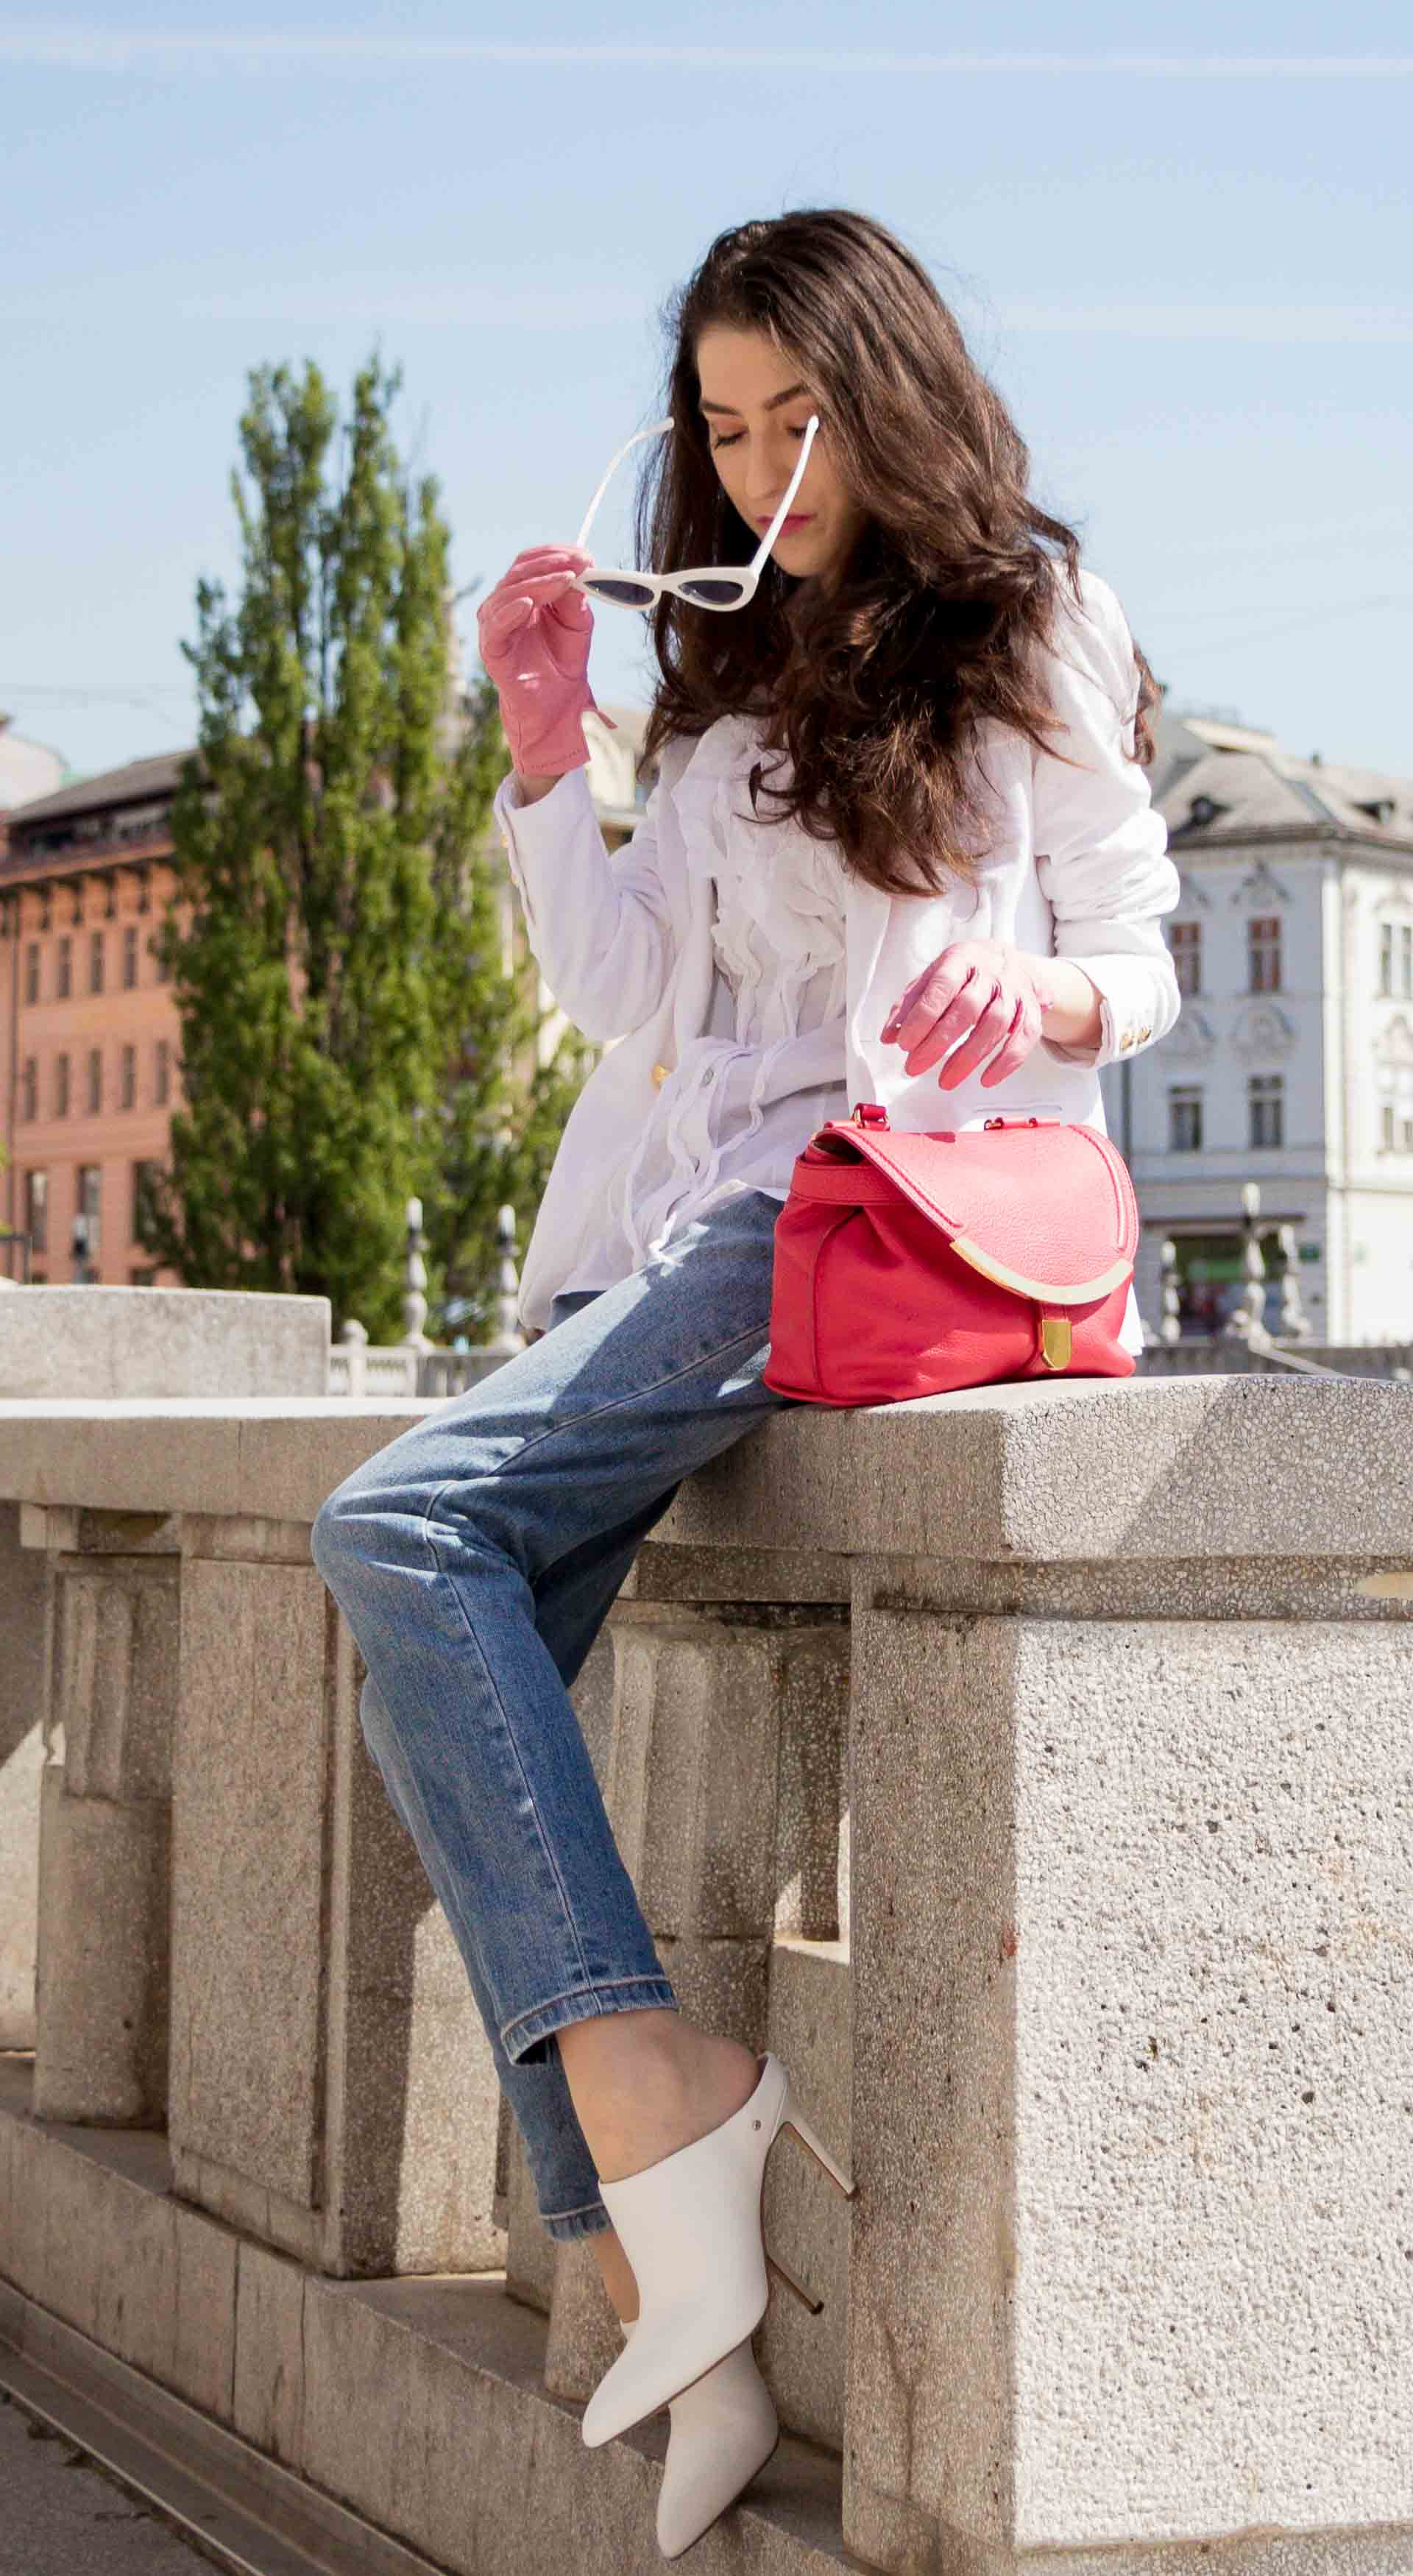 Veronika Lipar Fashion Blogger of Brunette from Wall Street wearing white mules, blue A.P.C. mom jeans, white fringe blouse, white blazer, pink gloves, pink top handle bag and Le Specs Lolita white cat eye sunglasses while sitting on the wall